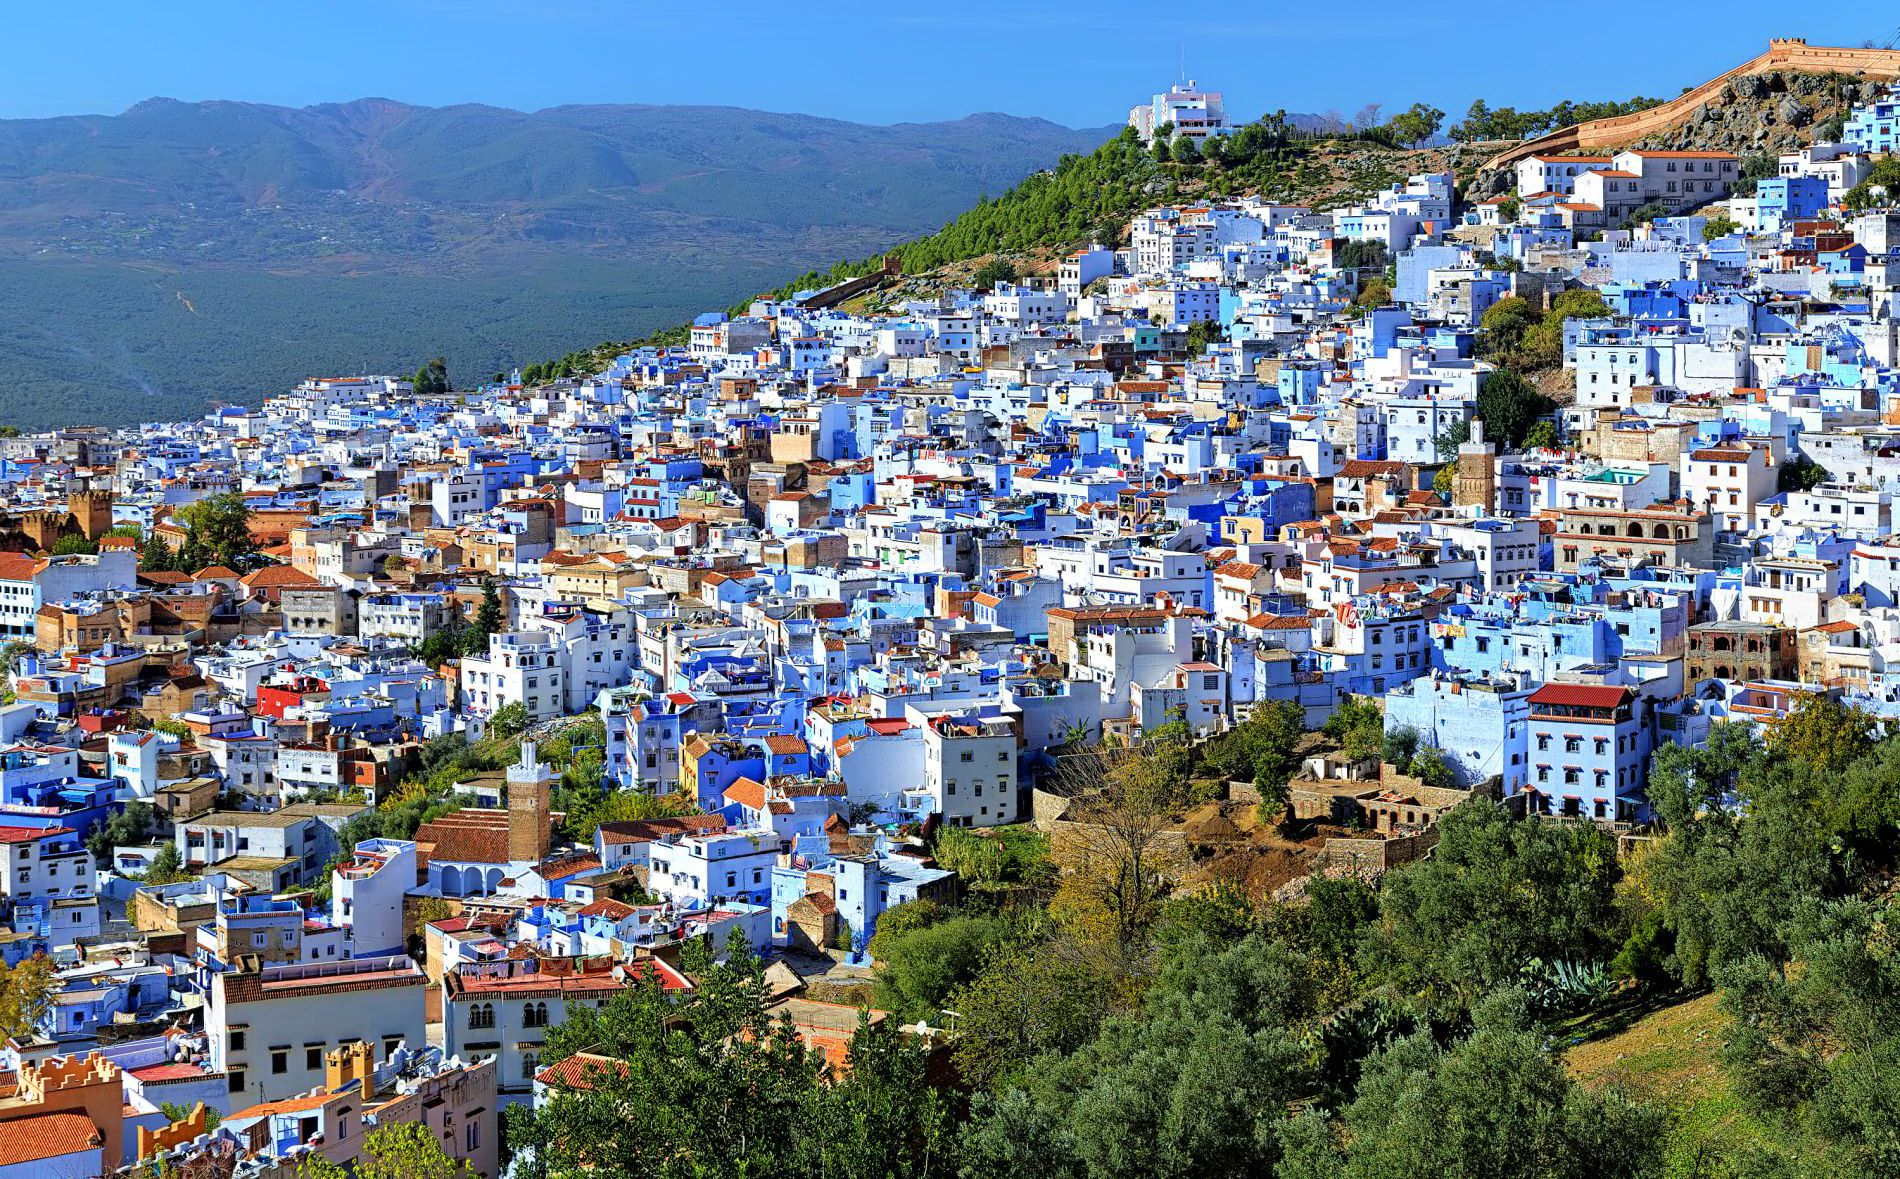 Hire My Guide - 10 places to visit in Morocco